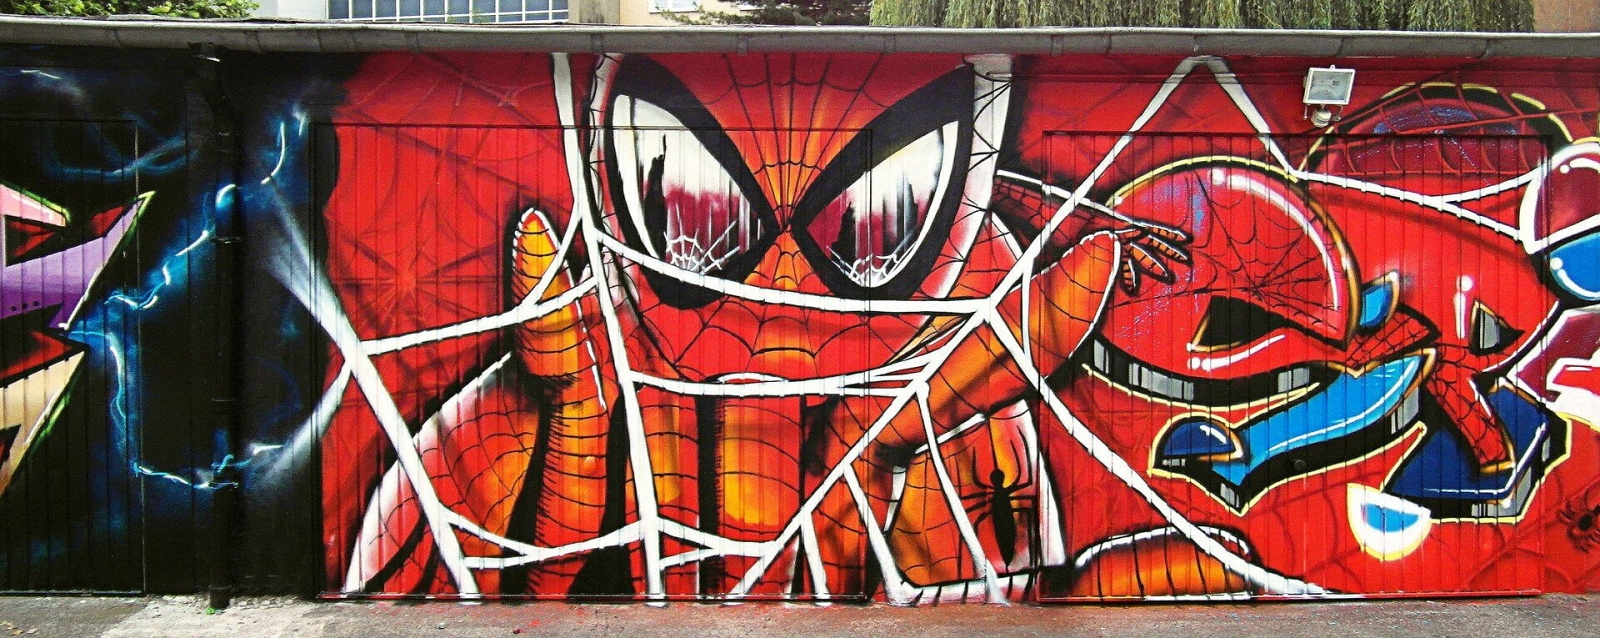 Graffiti Spiderman Gelsenkirchen Garage WAS